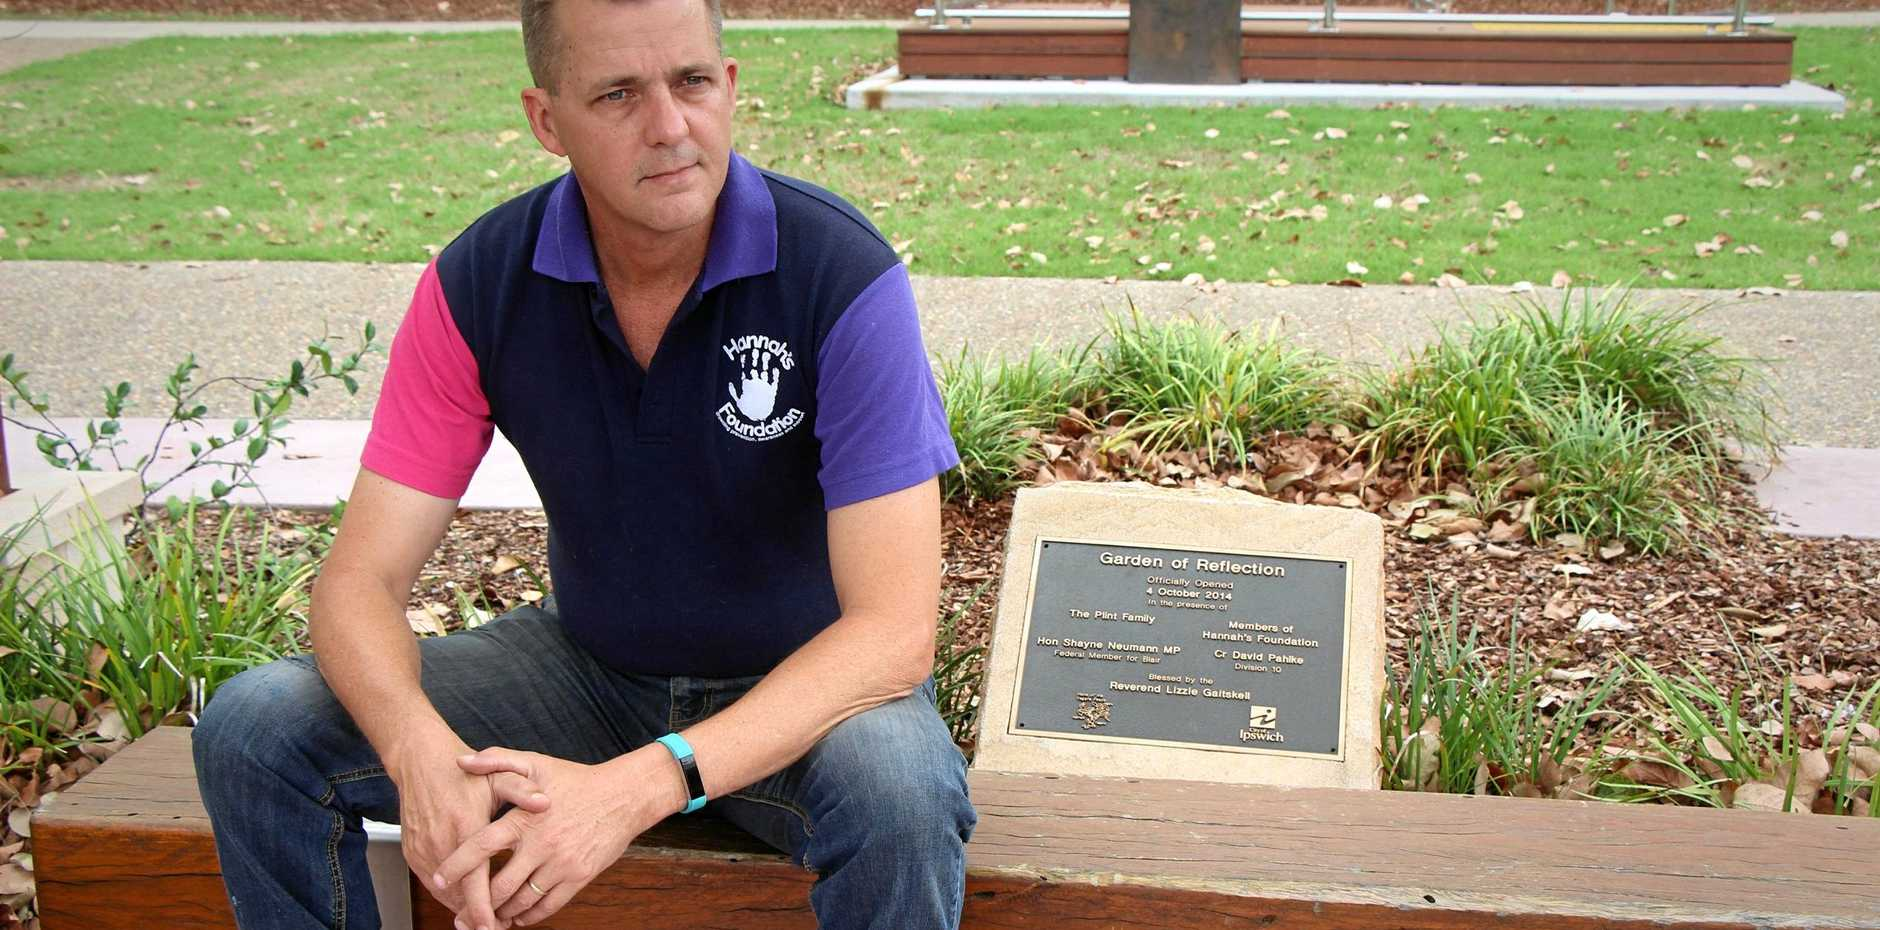 NEVER FORGOTTEN: Andrew Plint still grieves for his young daughter but is determined her death will not be in vain.